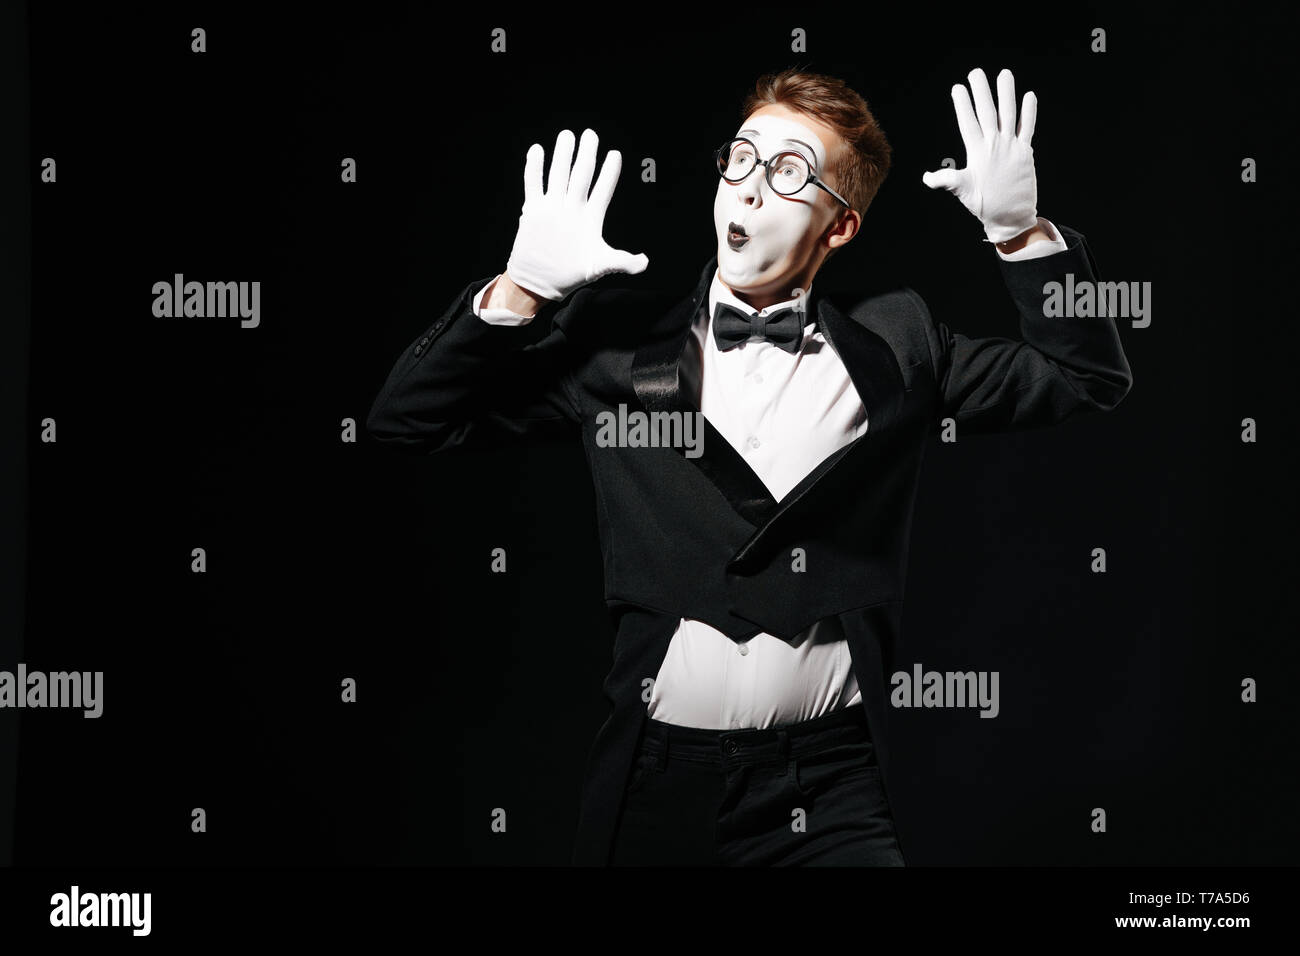 portrait of mime man holding his hands on an invisible wall on black background - Stock Image